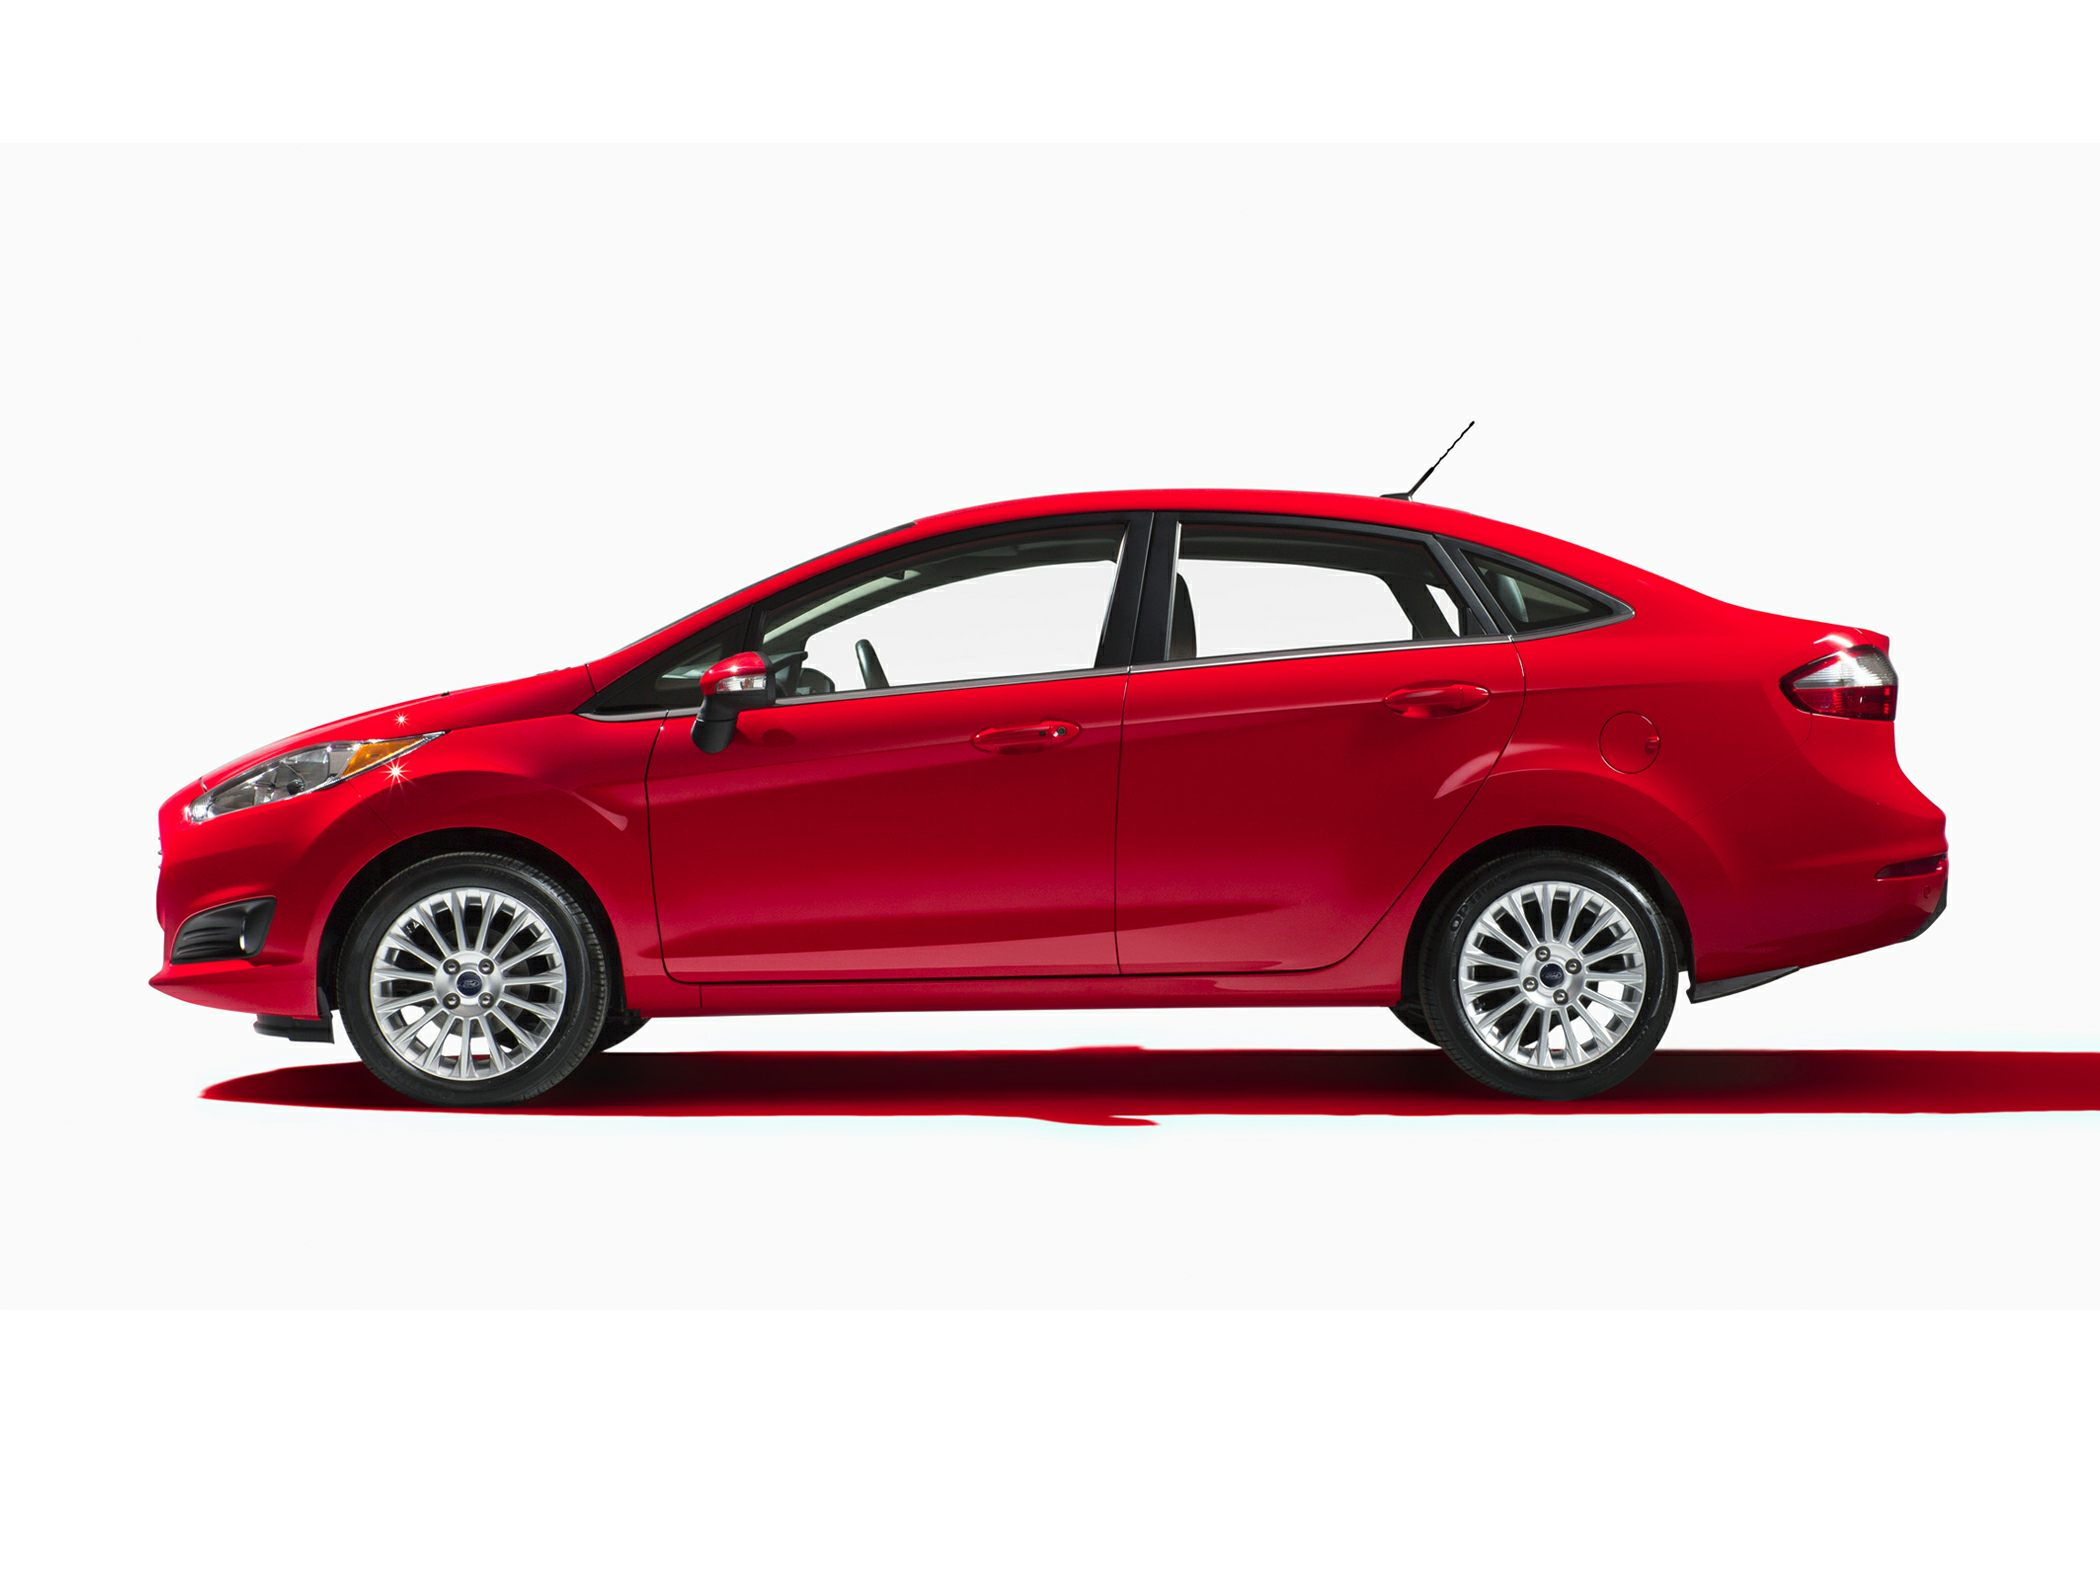 2019 Ford Fiesta For Sale In St Catharines Ed Learn 2014 Explorer Fuse Box Location S